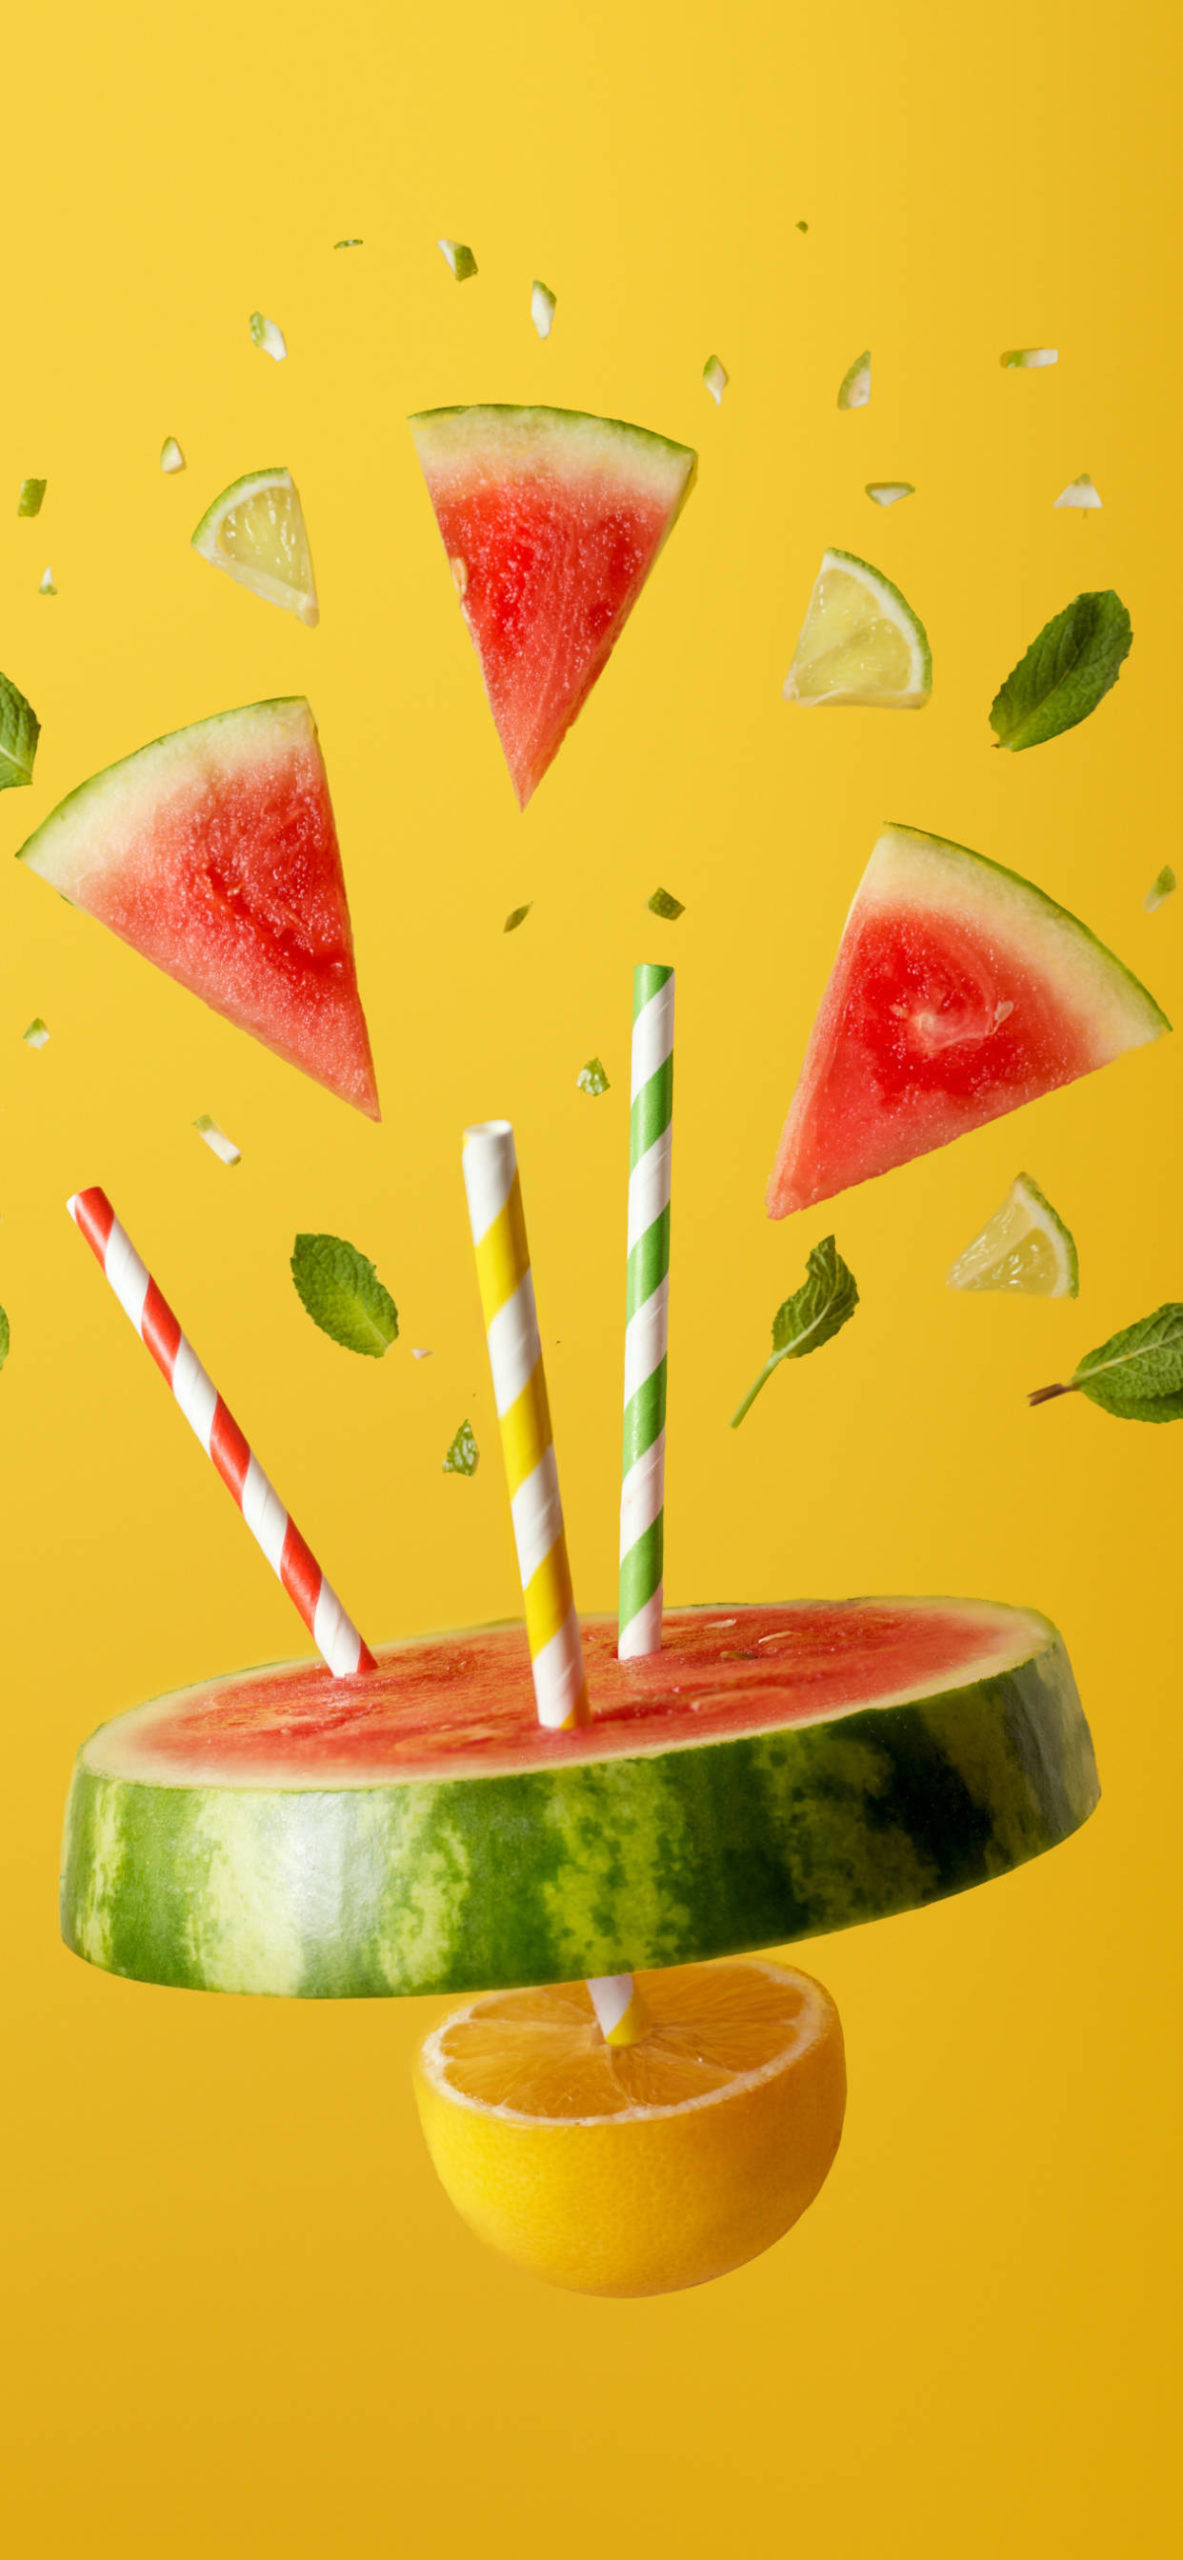 iPhone wallpapers fruits watermelon lemon scaled Fruits